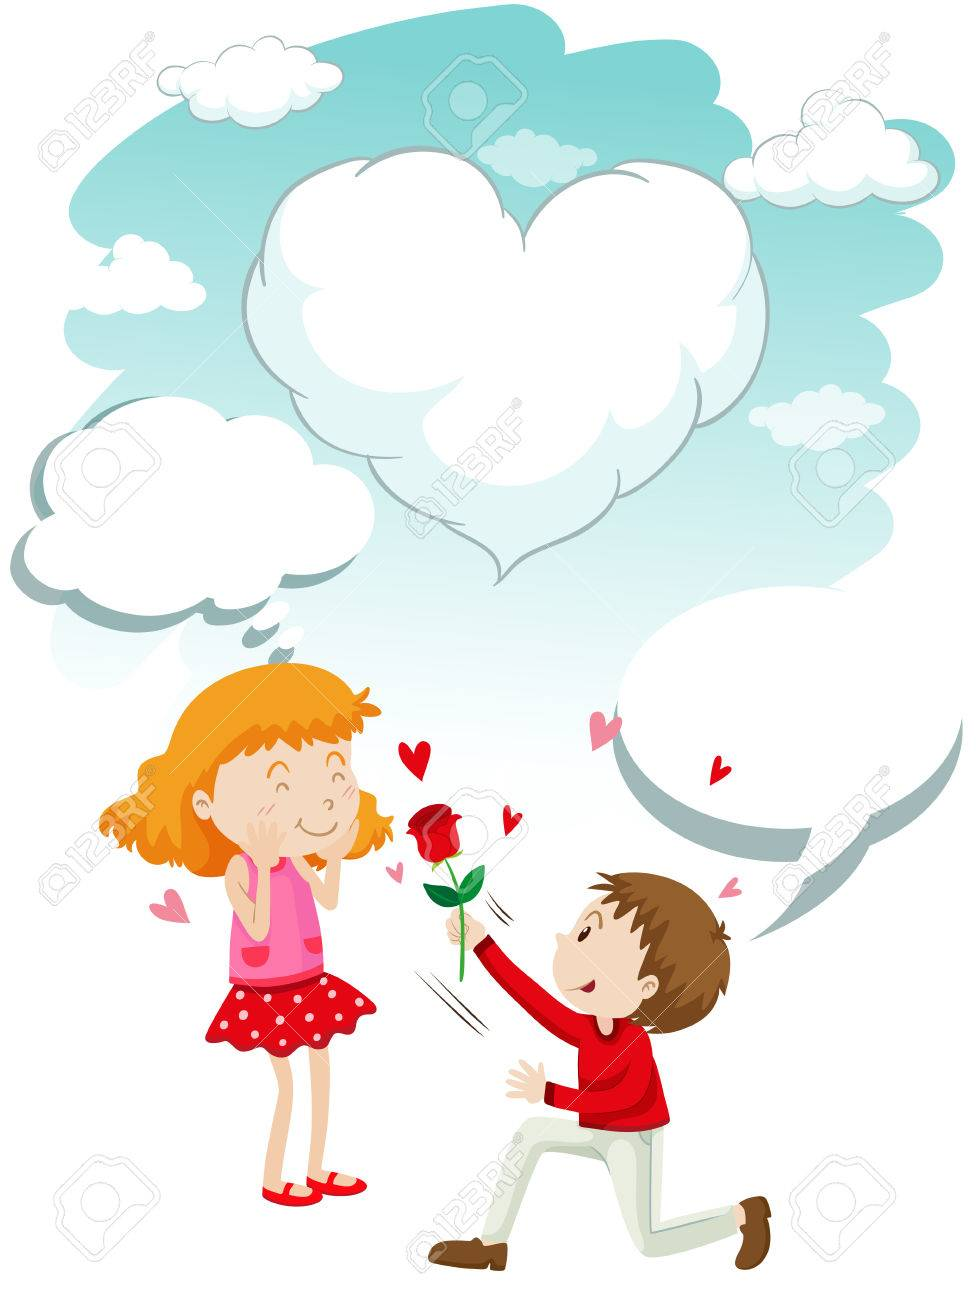 Free download clip art. Rose clipart giving